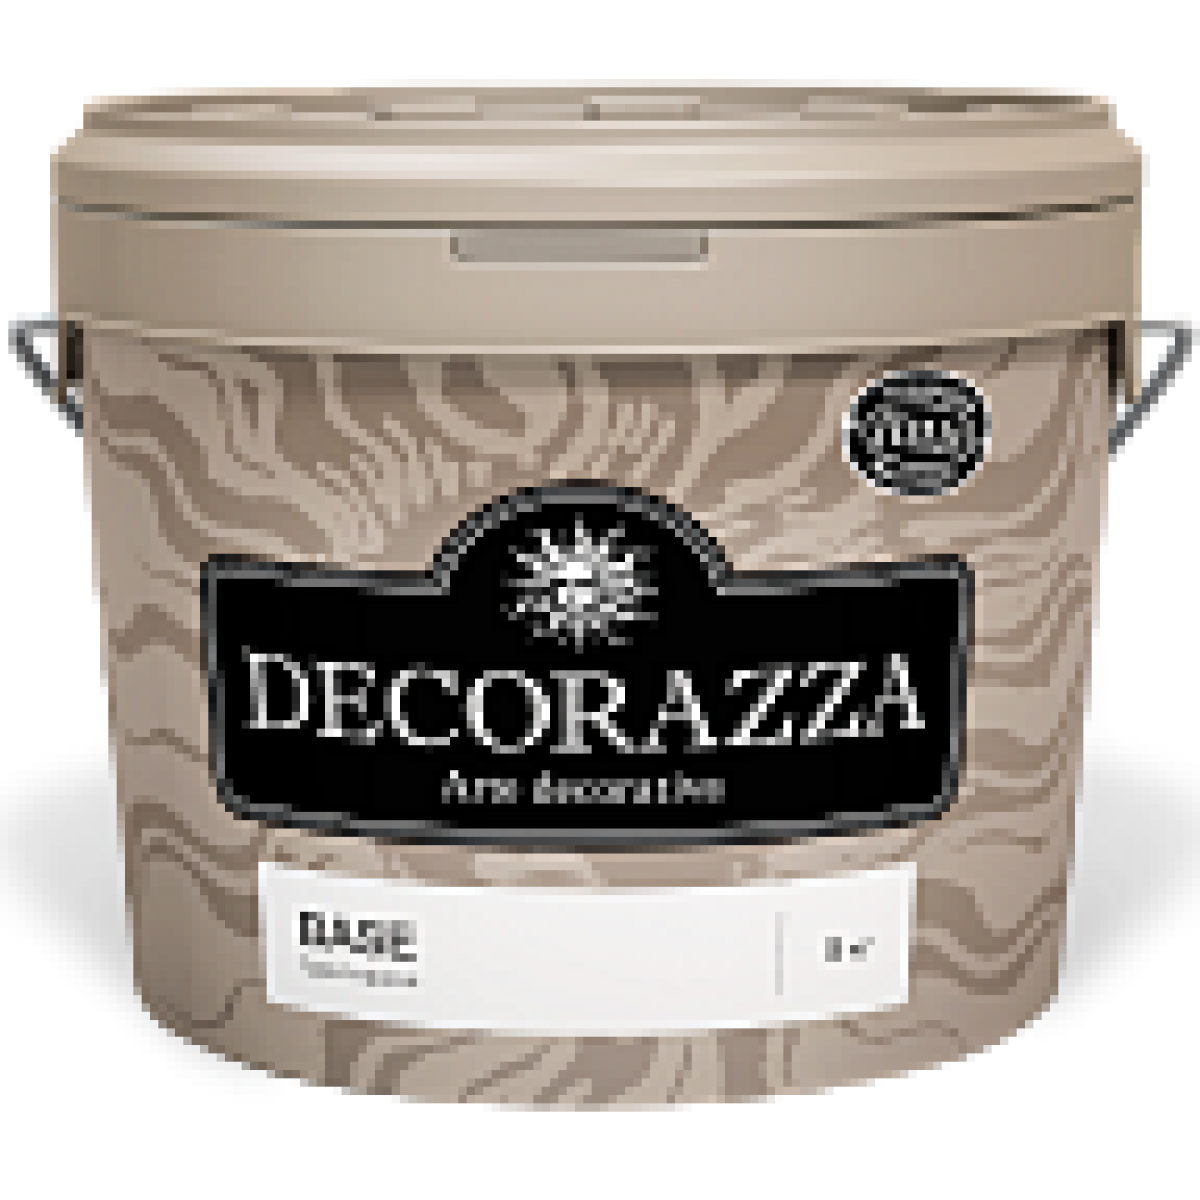 Decorazza Base - Decorazza Base